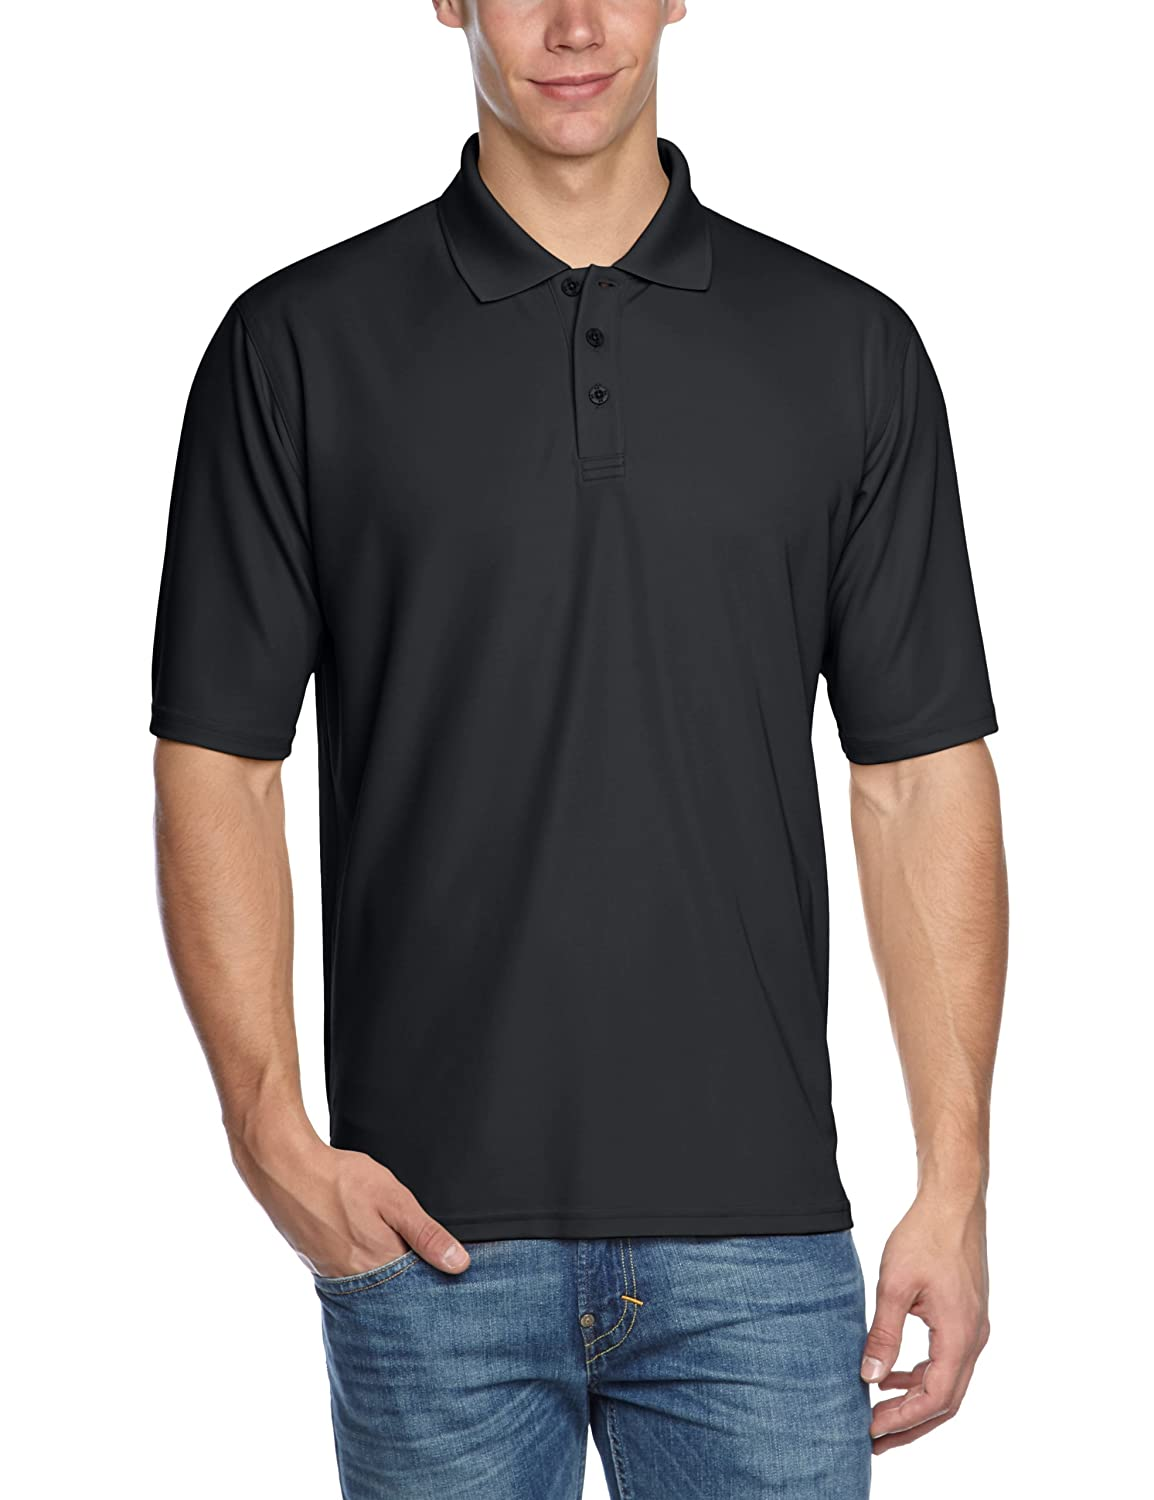 Under Armour Men's UA Tactical Range Polo Extra Large Black